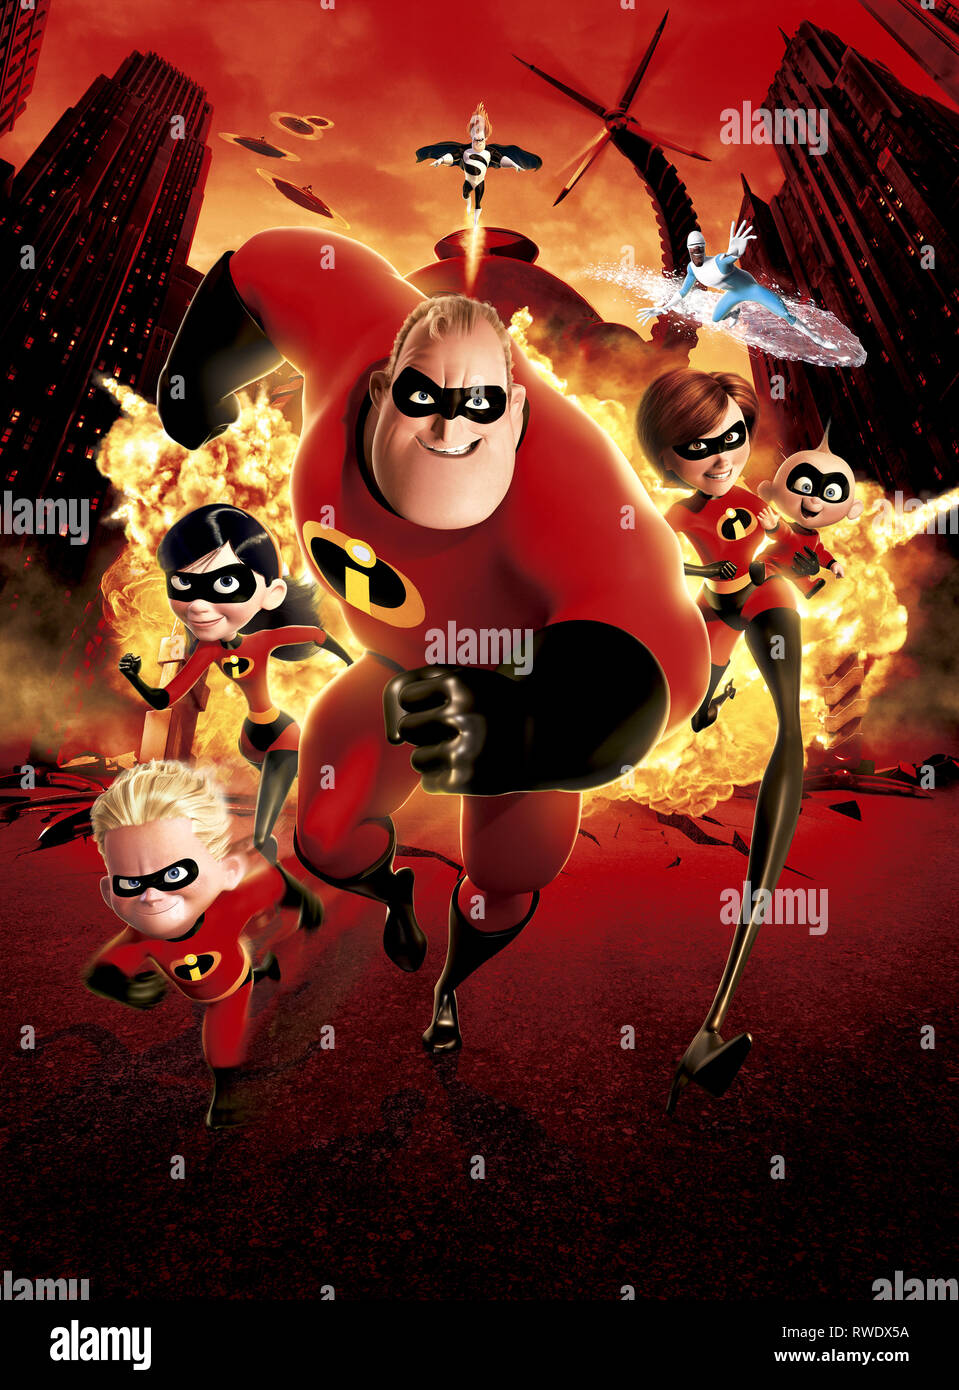 DASH,PARR,INCREDIBLE,SYNDROME,ELASTIGIRL,FROZONE,JACK, THE INCREDIBLES, 2004 - Stock Image